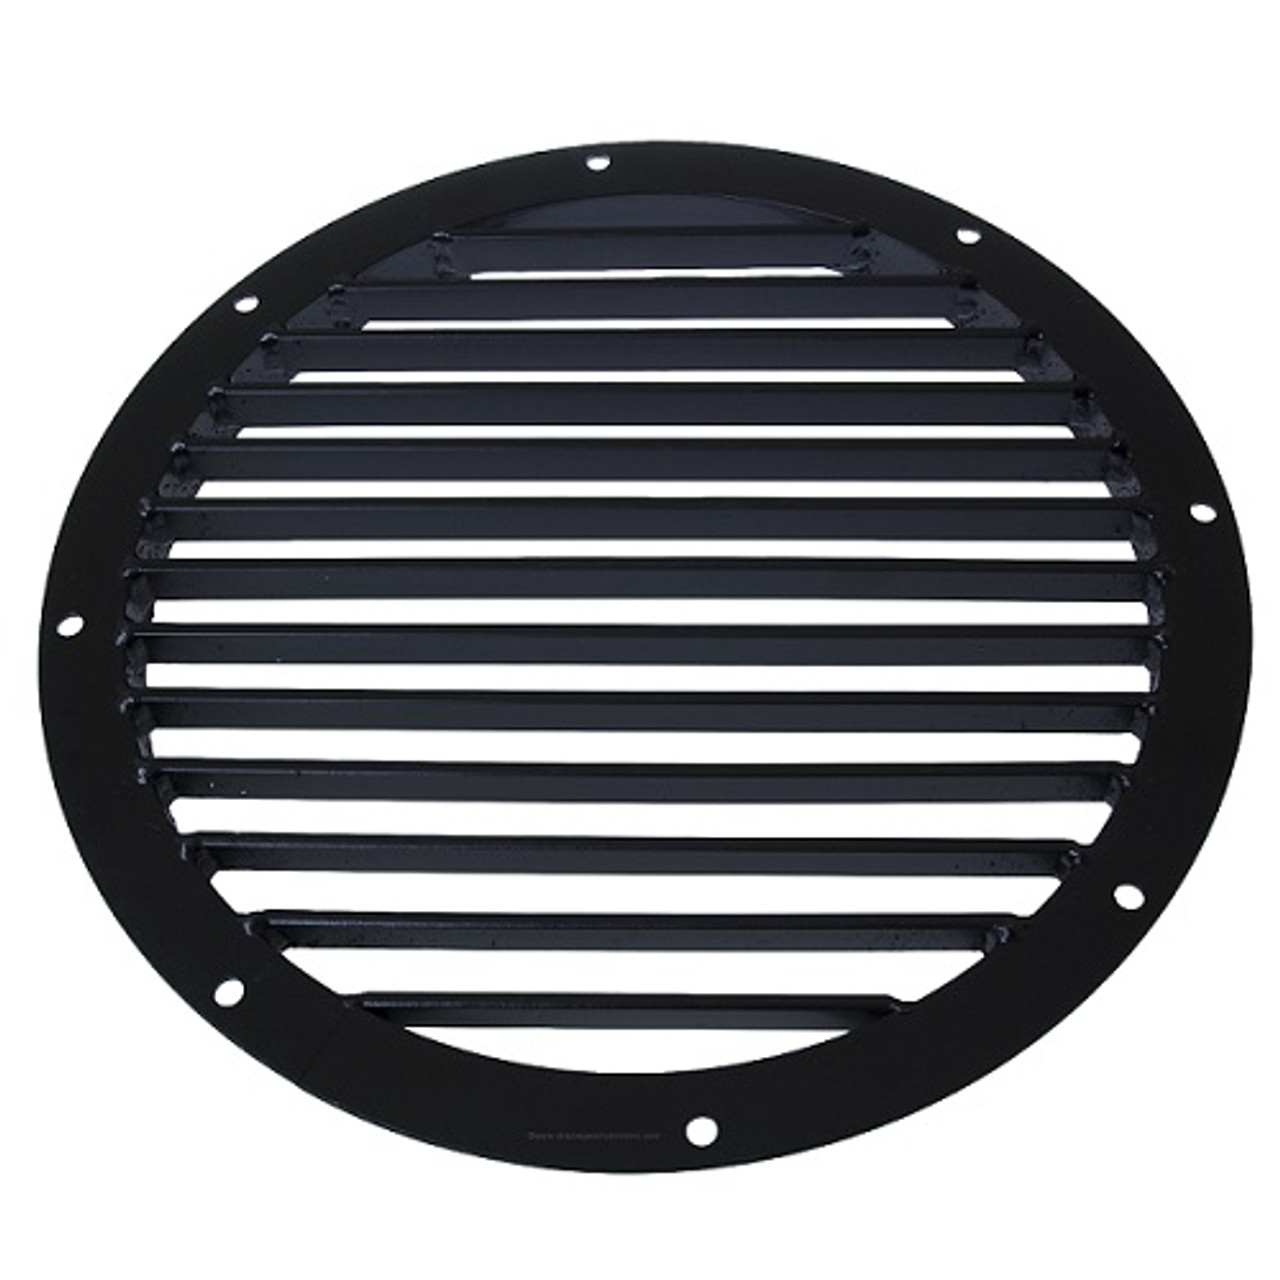 Round 24 Quot Steel Grate Black The Drainage Products Store